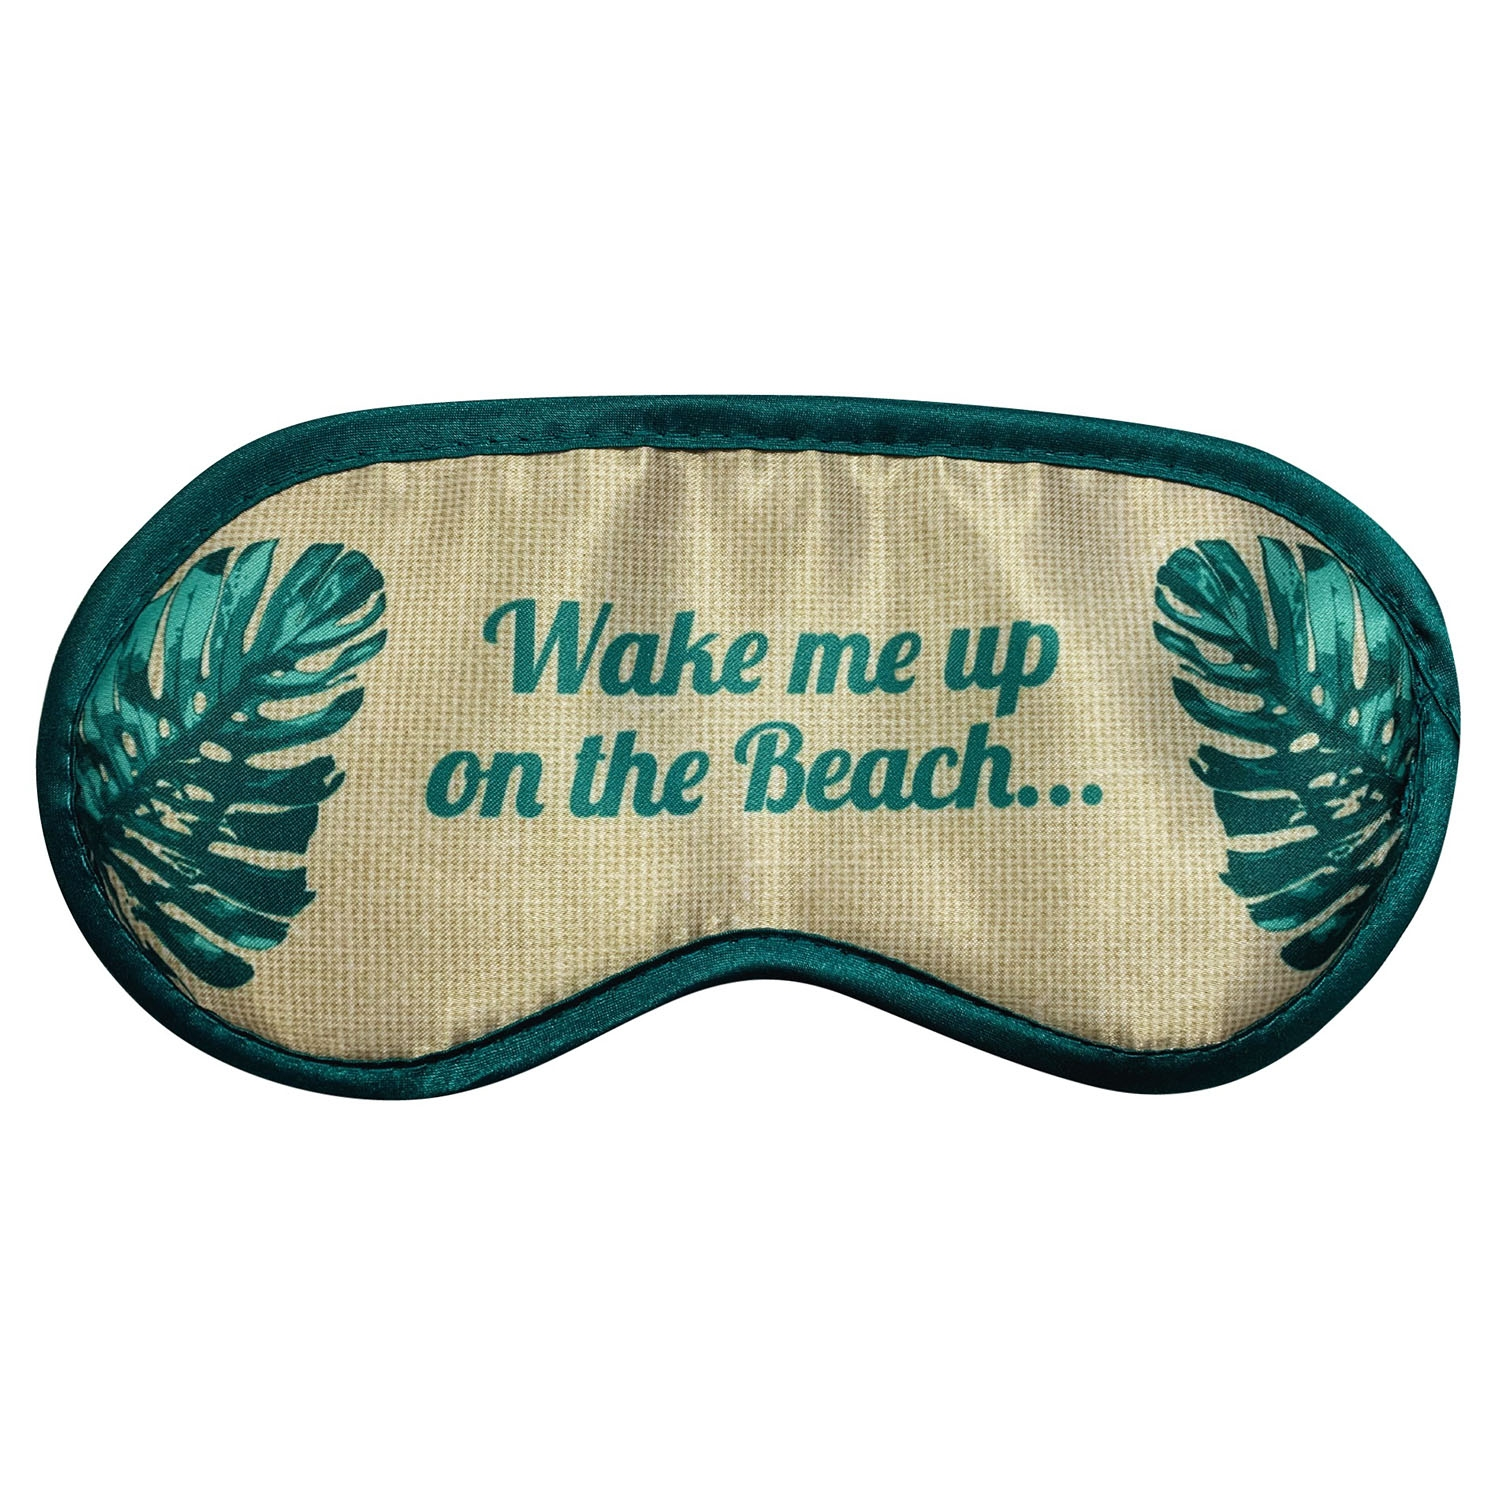 Image of Danielle Creations Tropical Palm 'Wake me up on the Beach' Eye Mask